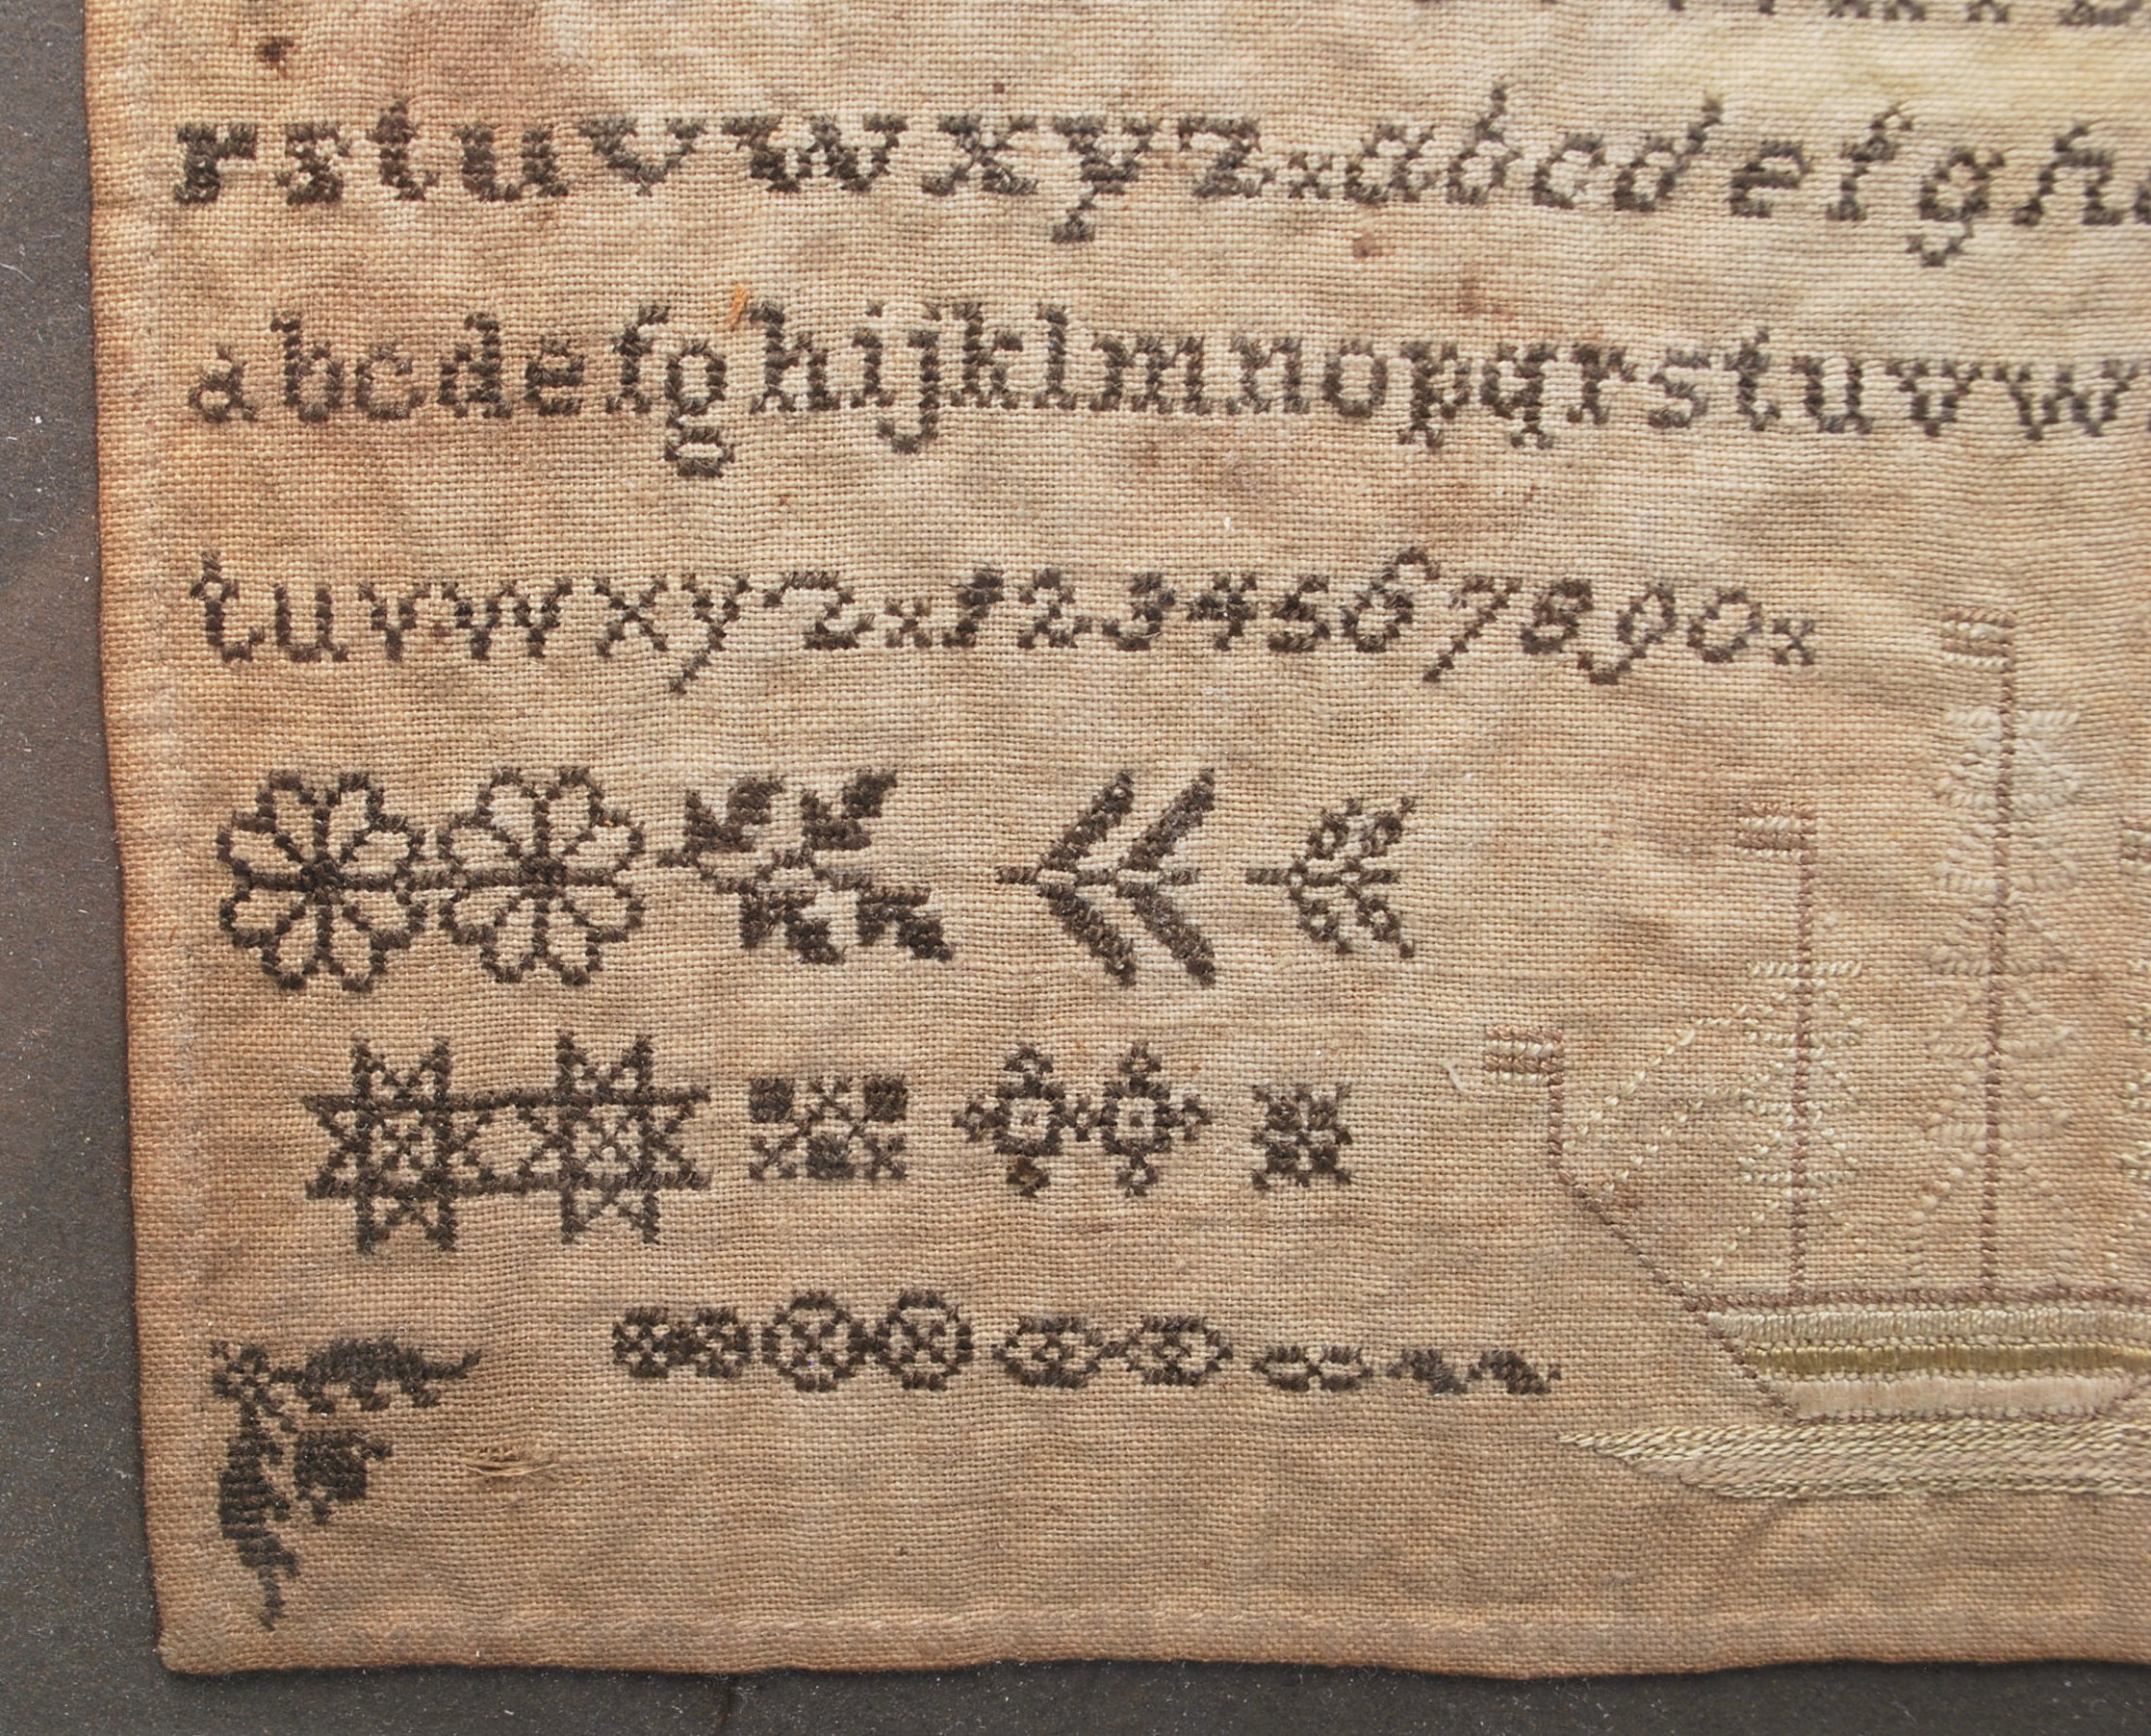 A 19th Century Victorian needlework / needlepoint embroidery sampler stitched with the alphabet, - Image 3 of 5